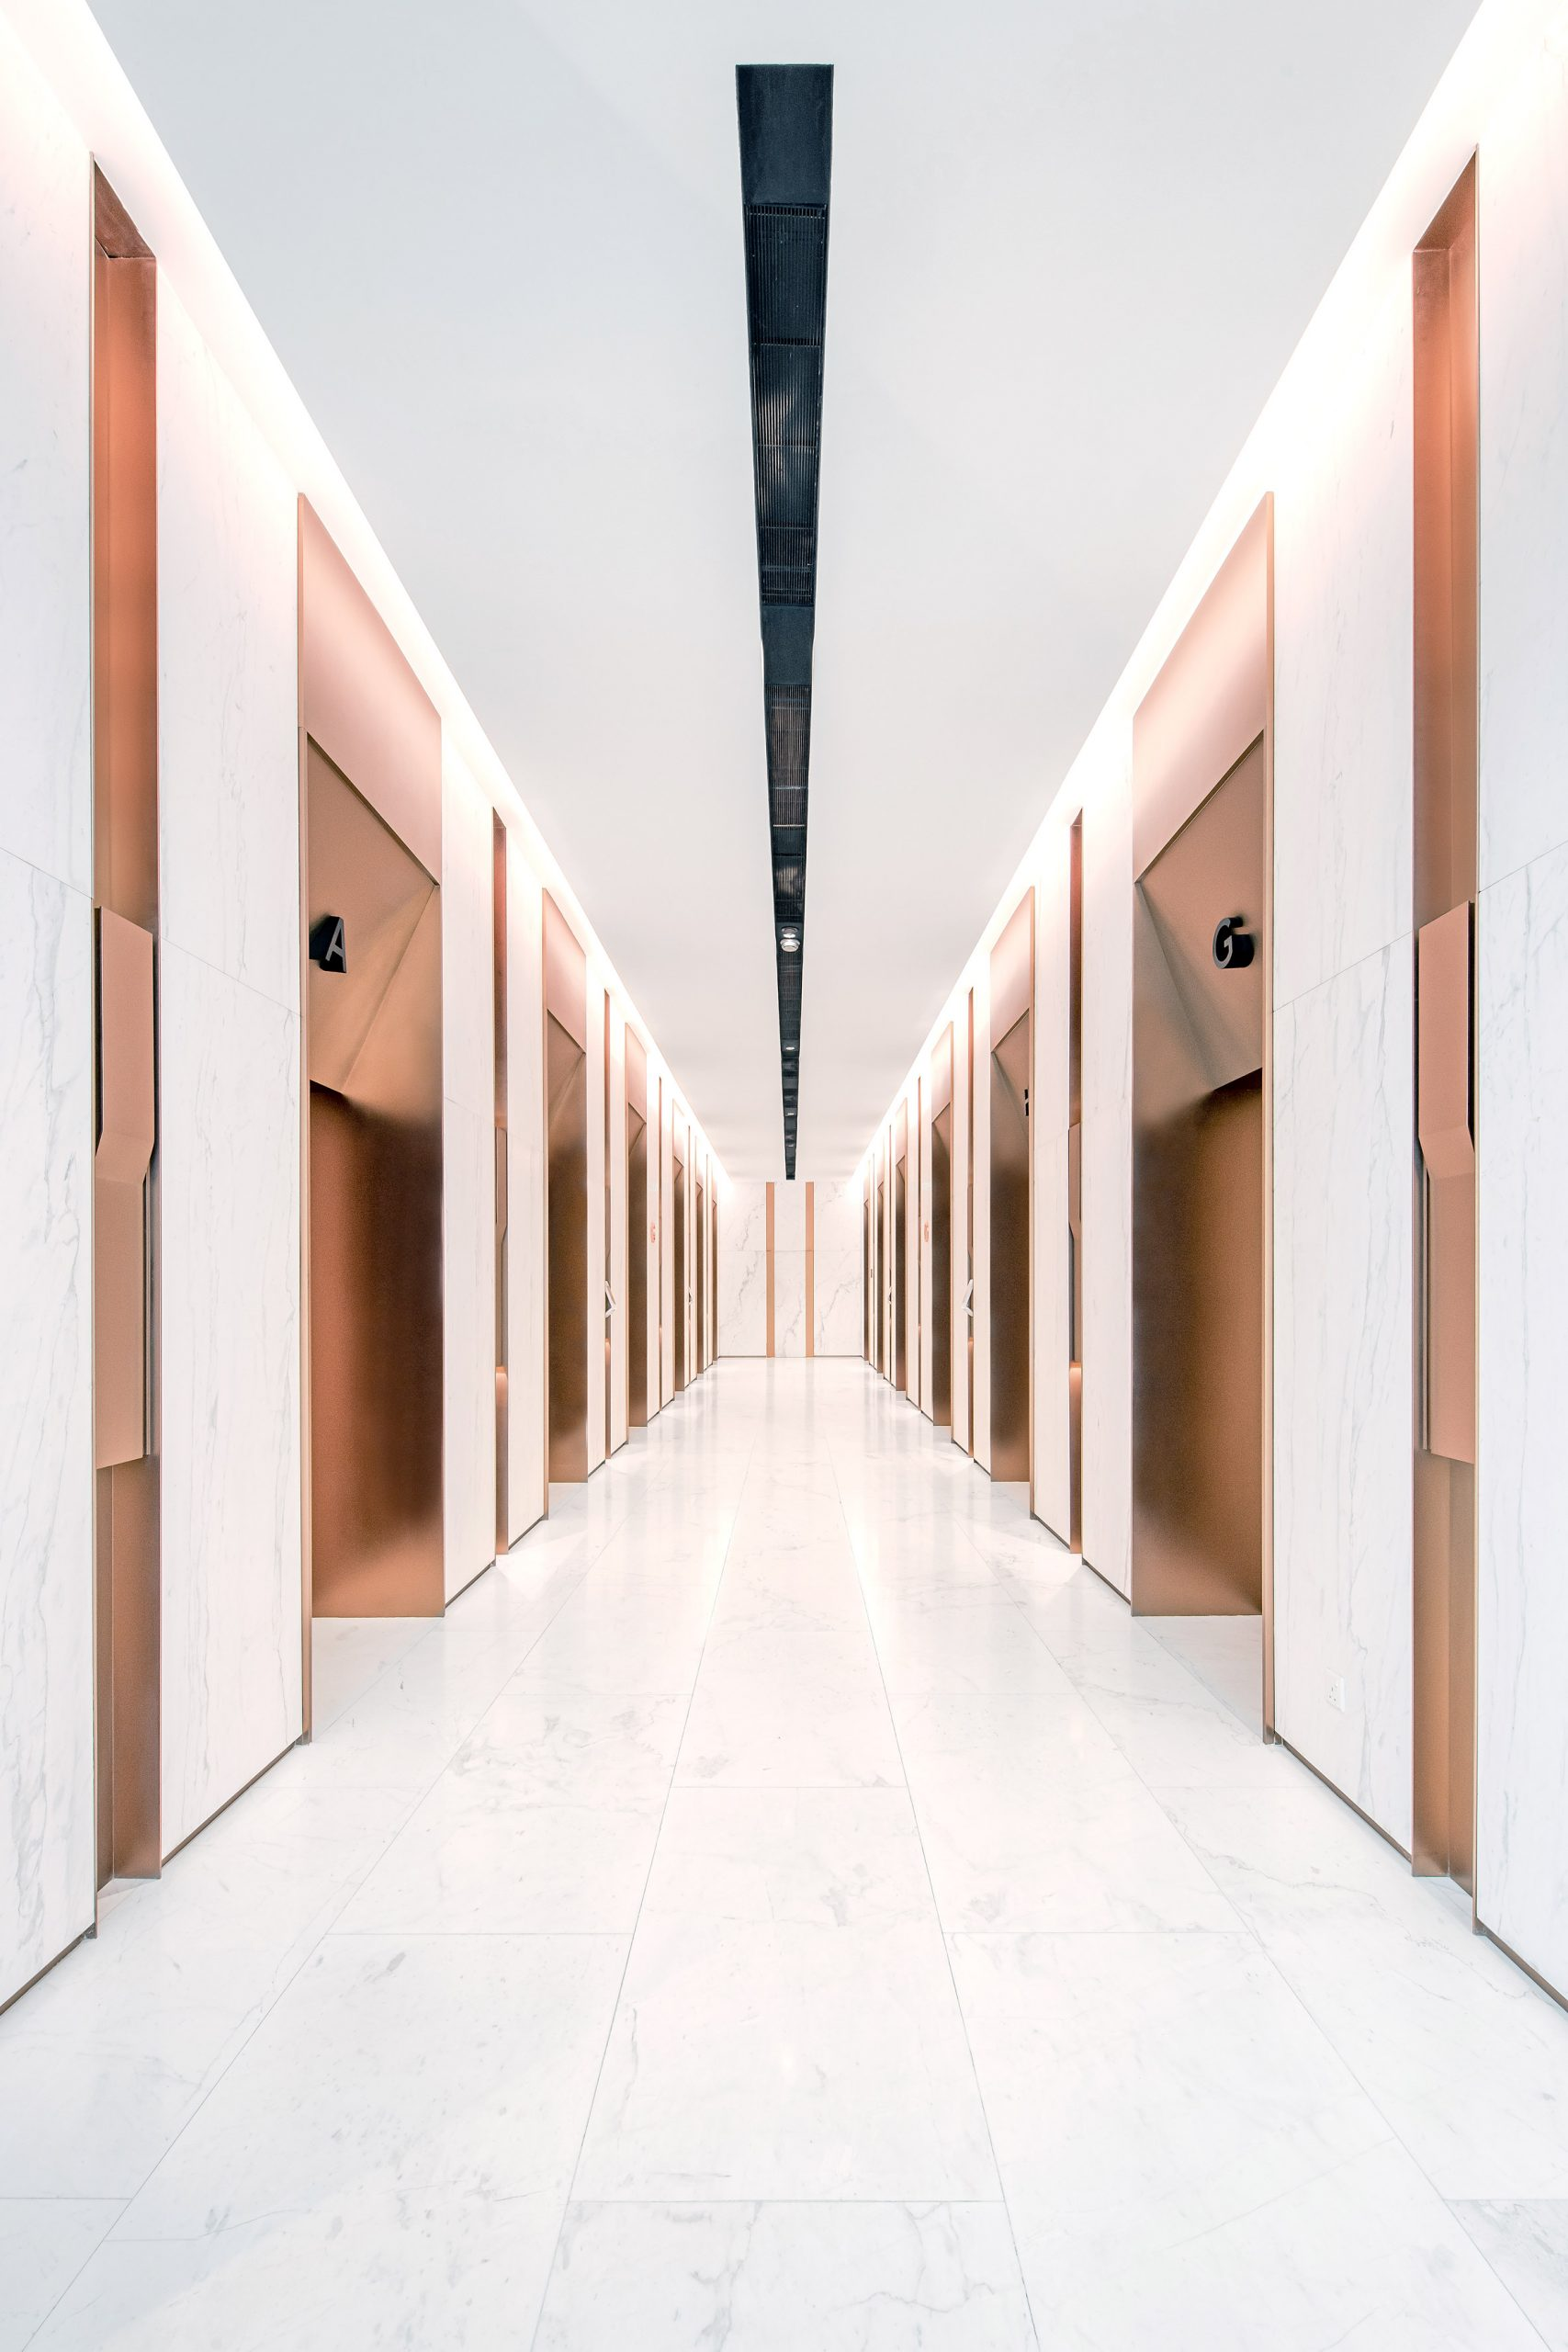 The lift lobby by Ministry of Design in the YTL Headquarters in Kuala Lumpur